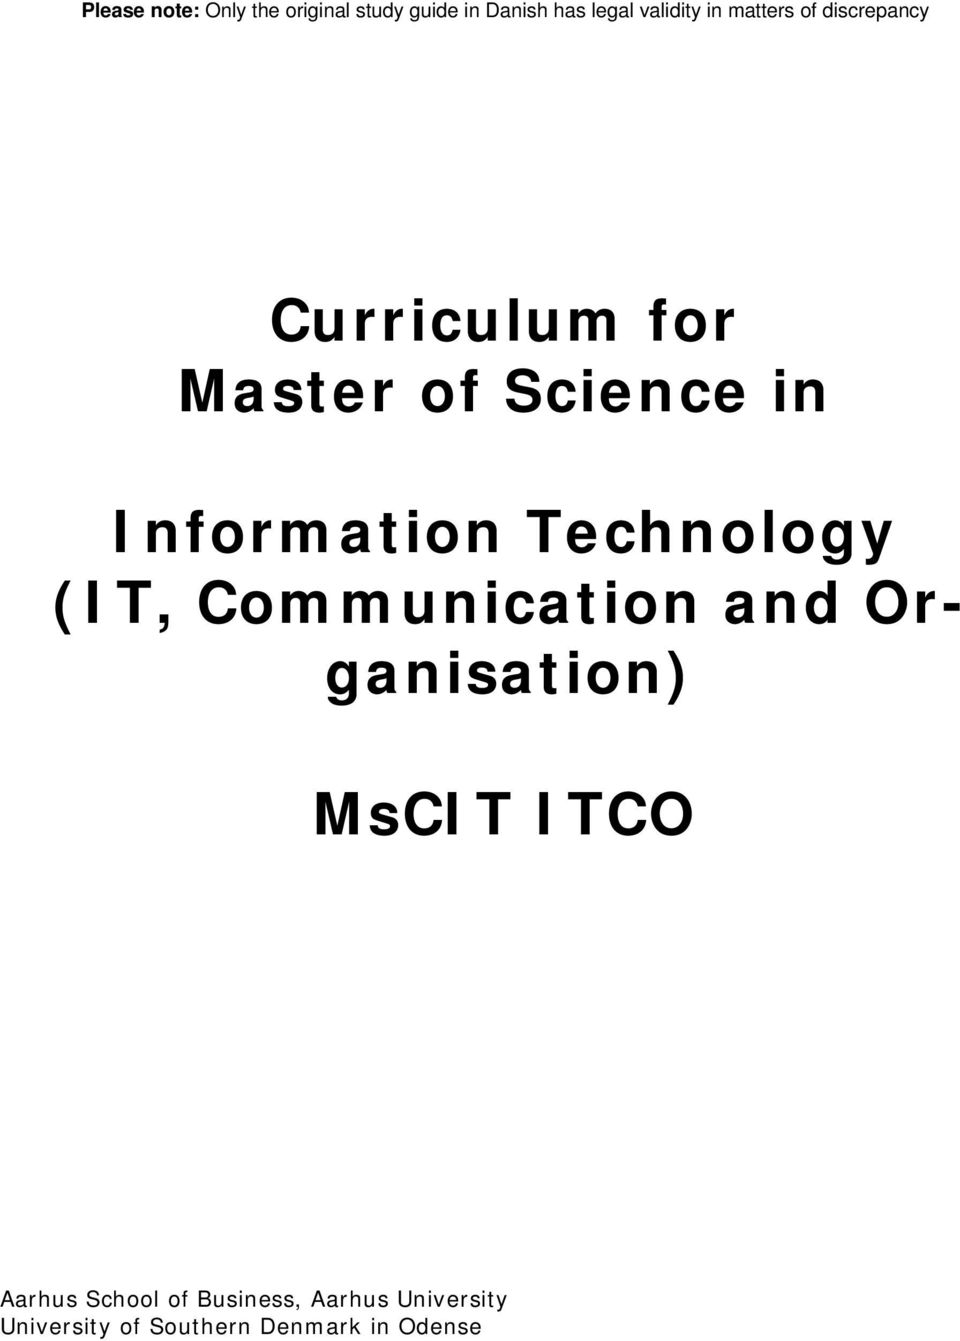 Information Technology (IT, Communication and Organisation) MsCIT ITCO